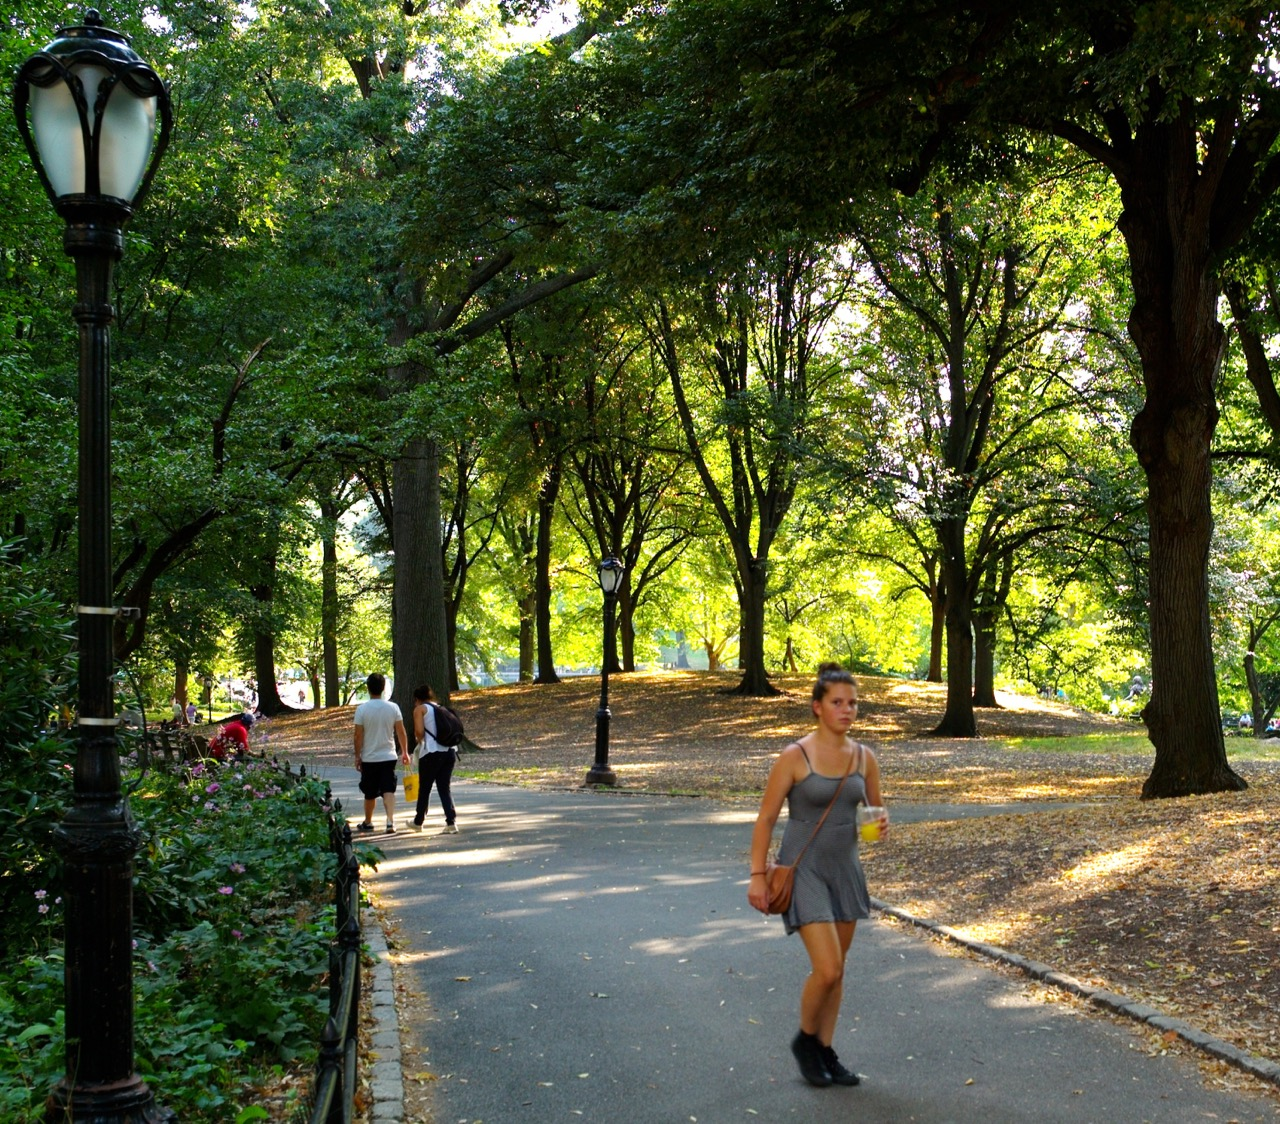 Cetral Park: Girls In Their Summer Clothes: Central Park